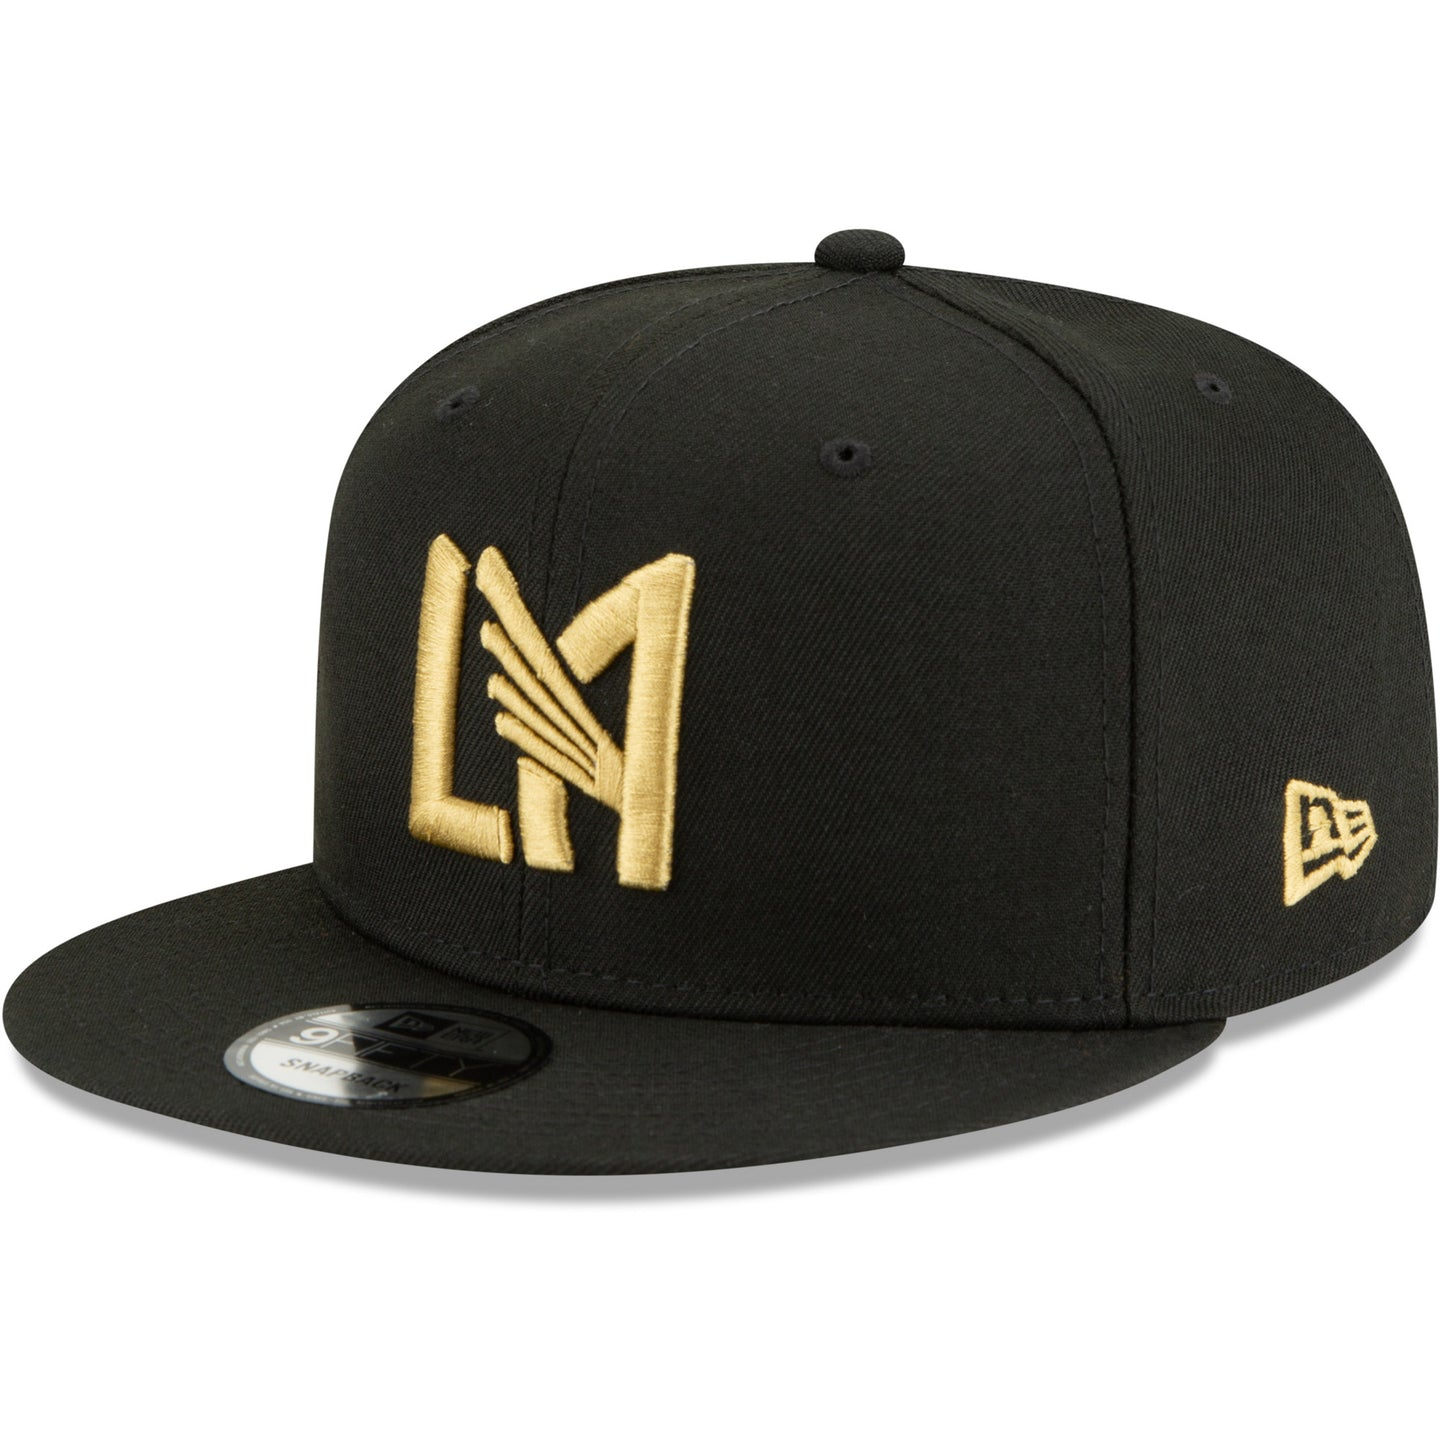 LAFC Men's ICON 950-Black-Adjustable Hat